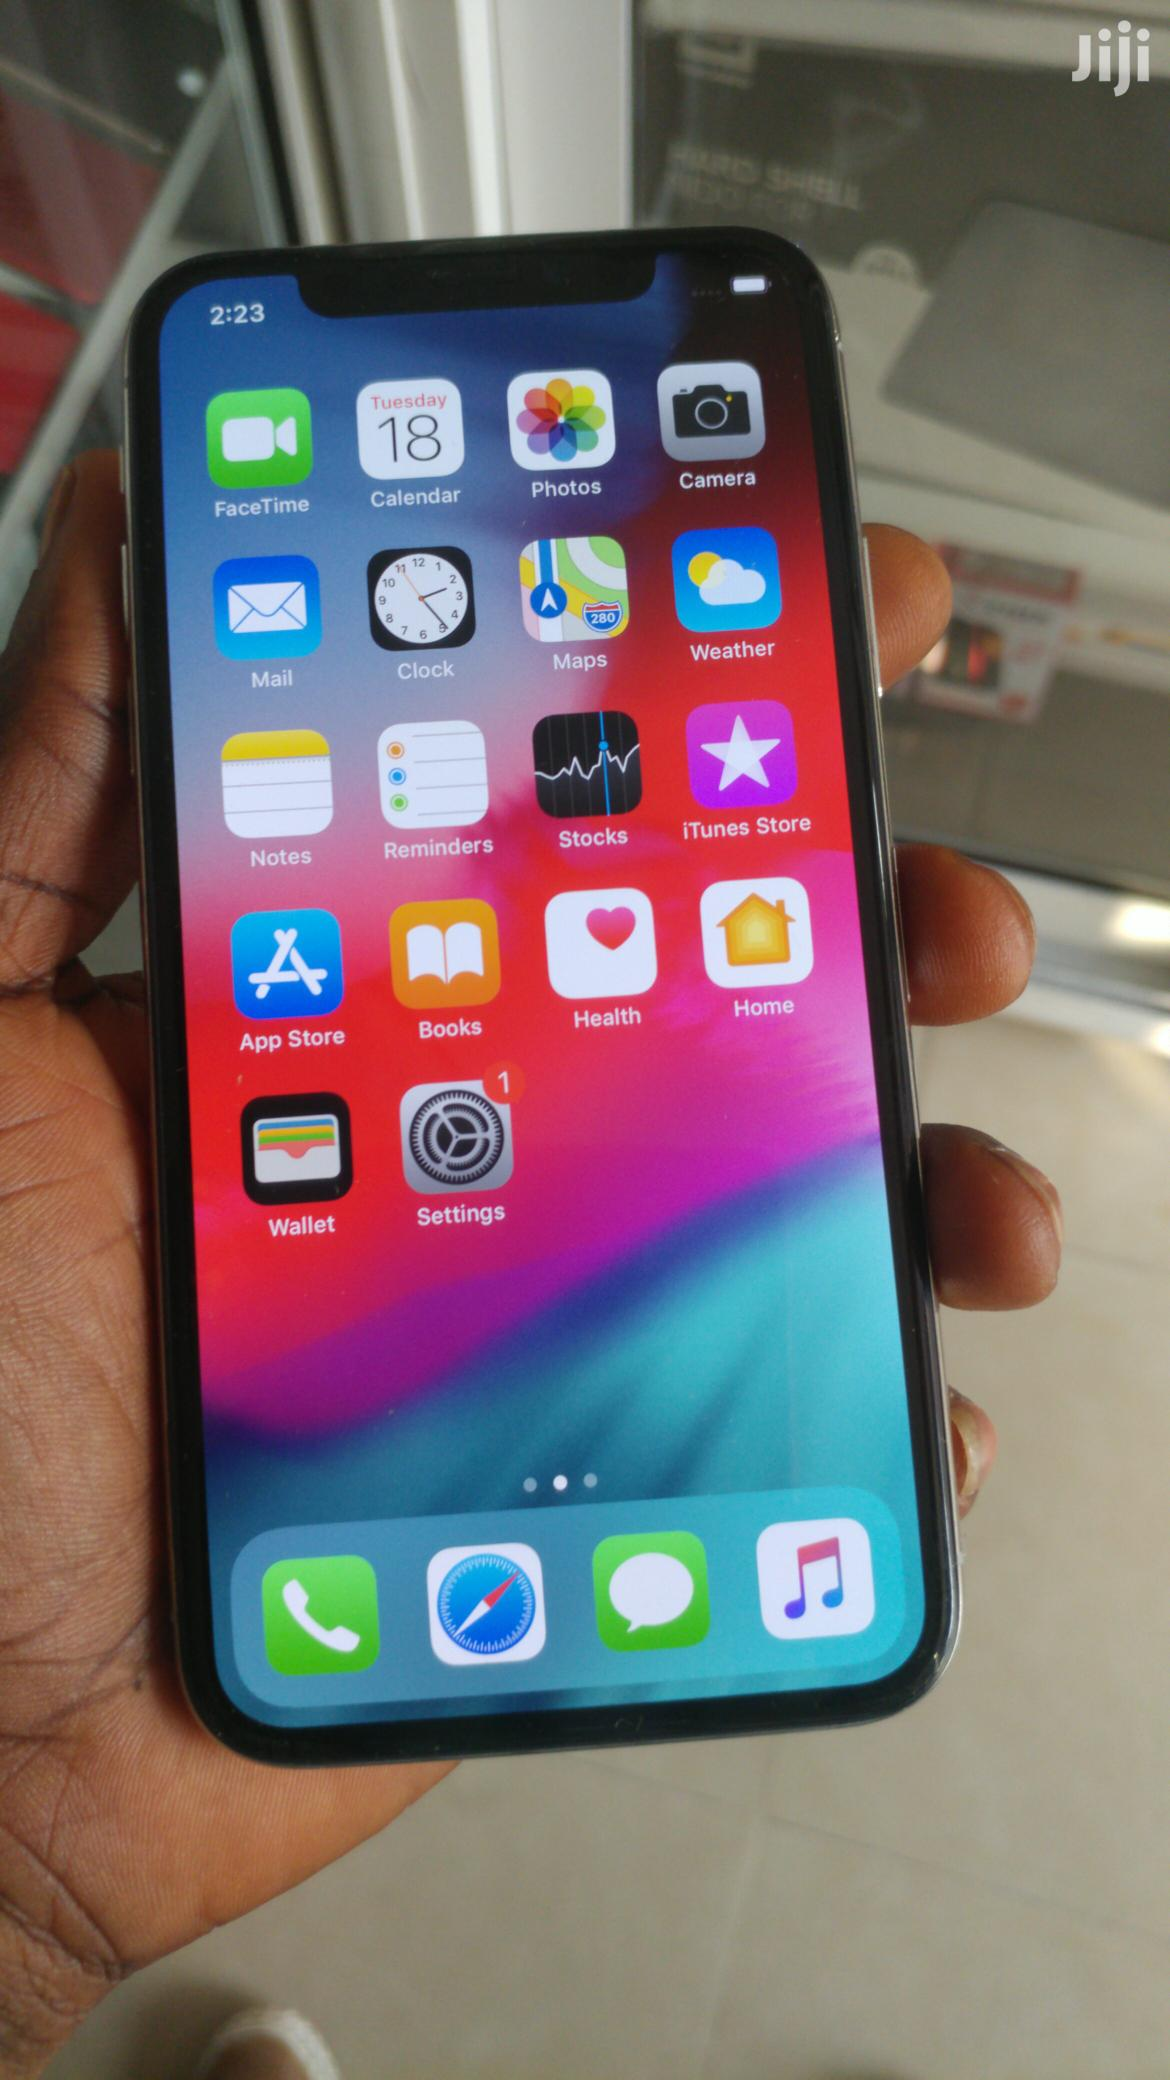 Archive: Apple iPhone X 64 GB White in Ikeja - Mobile Phones, De Joe System  Jiji.ng for sale